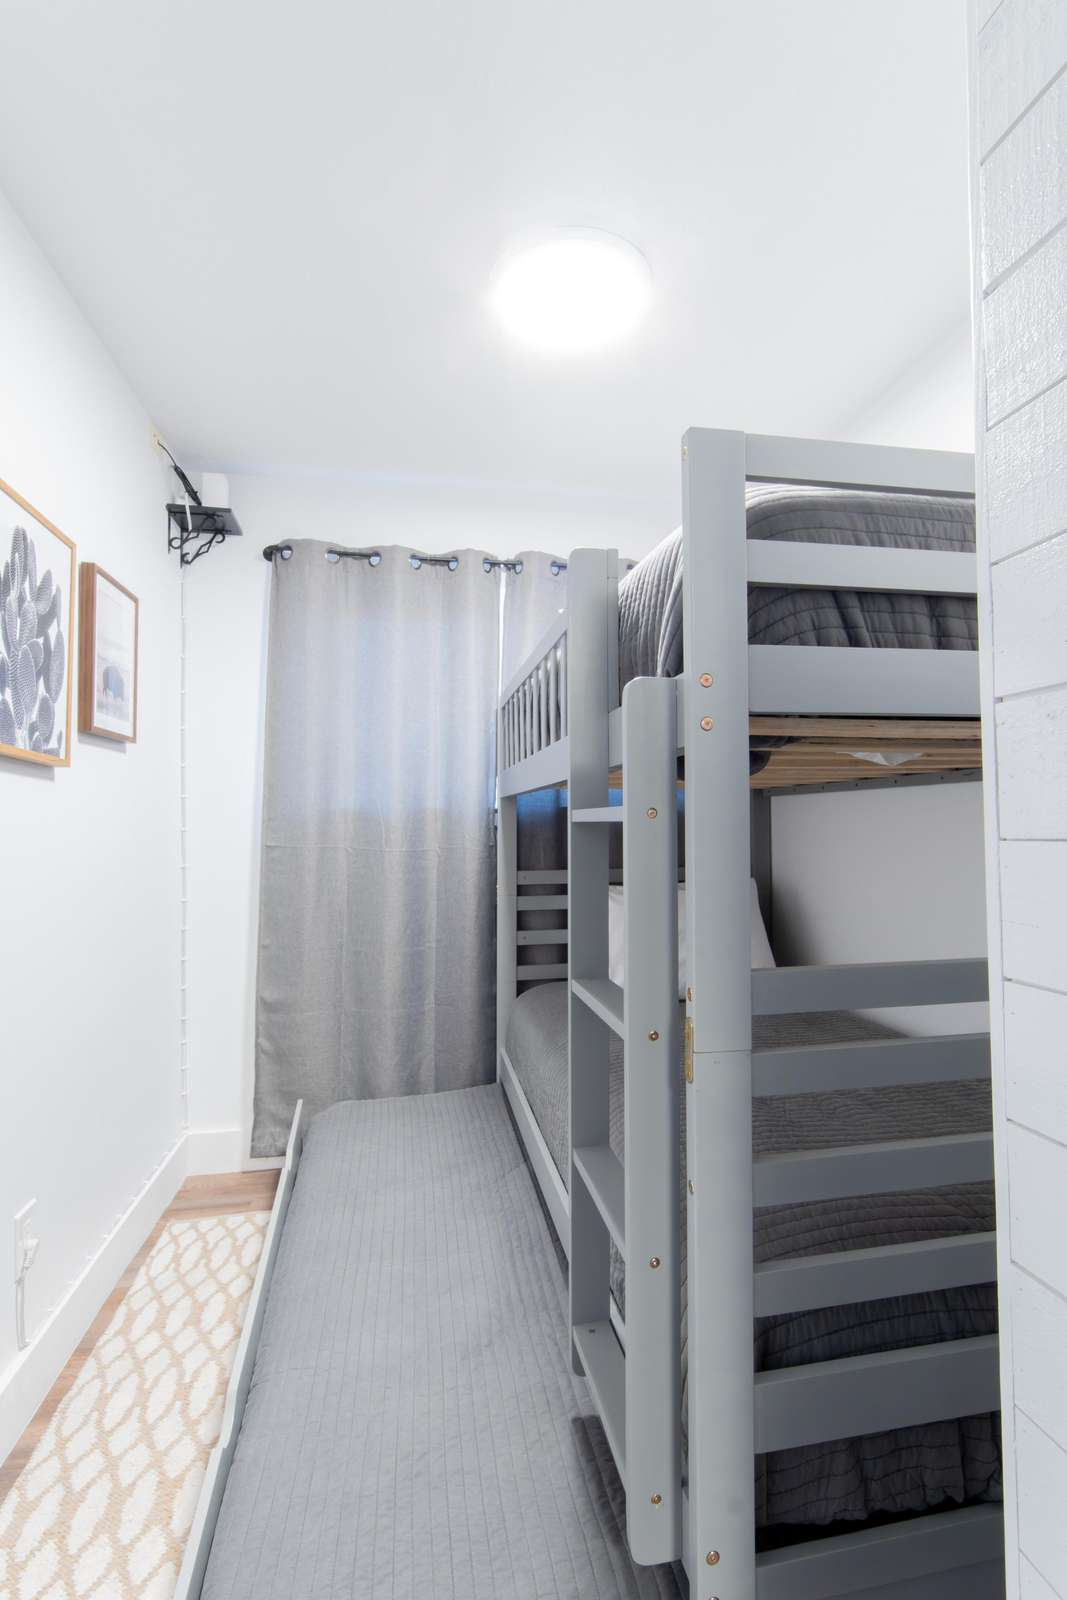 Bedroom 2 - 3 Twin Beds (Trundle)